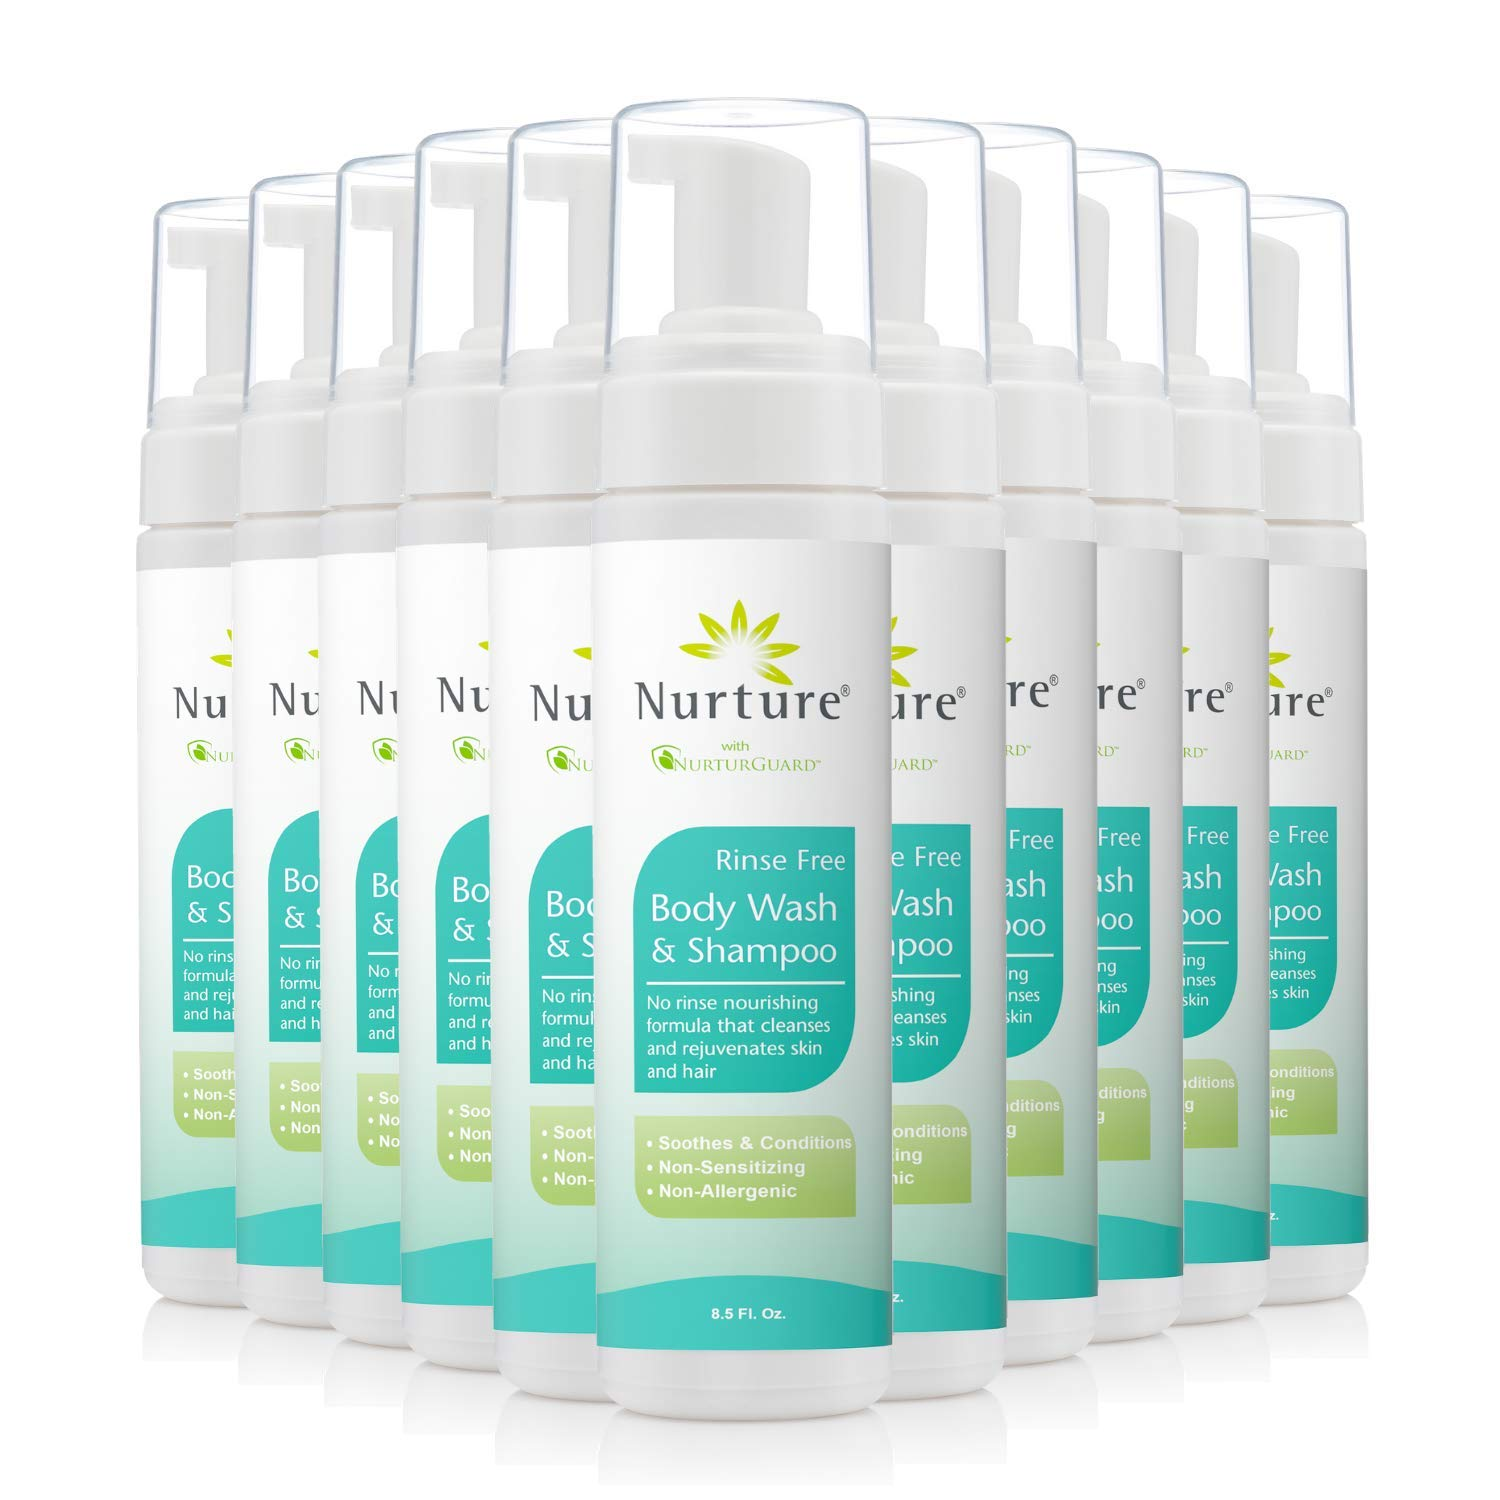 No Rinse Body Wash & Shampoo by Nurture | Hospital Grade Full Hair & Body Cleansing Foam with Aloe Vera - Non Allergenic - Non Sensitizing - Rinse Free Wipe Away Foaming Cleanser - 12 Bottles